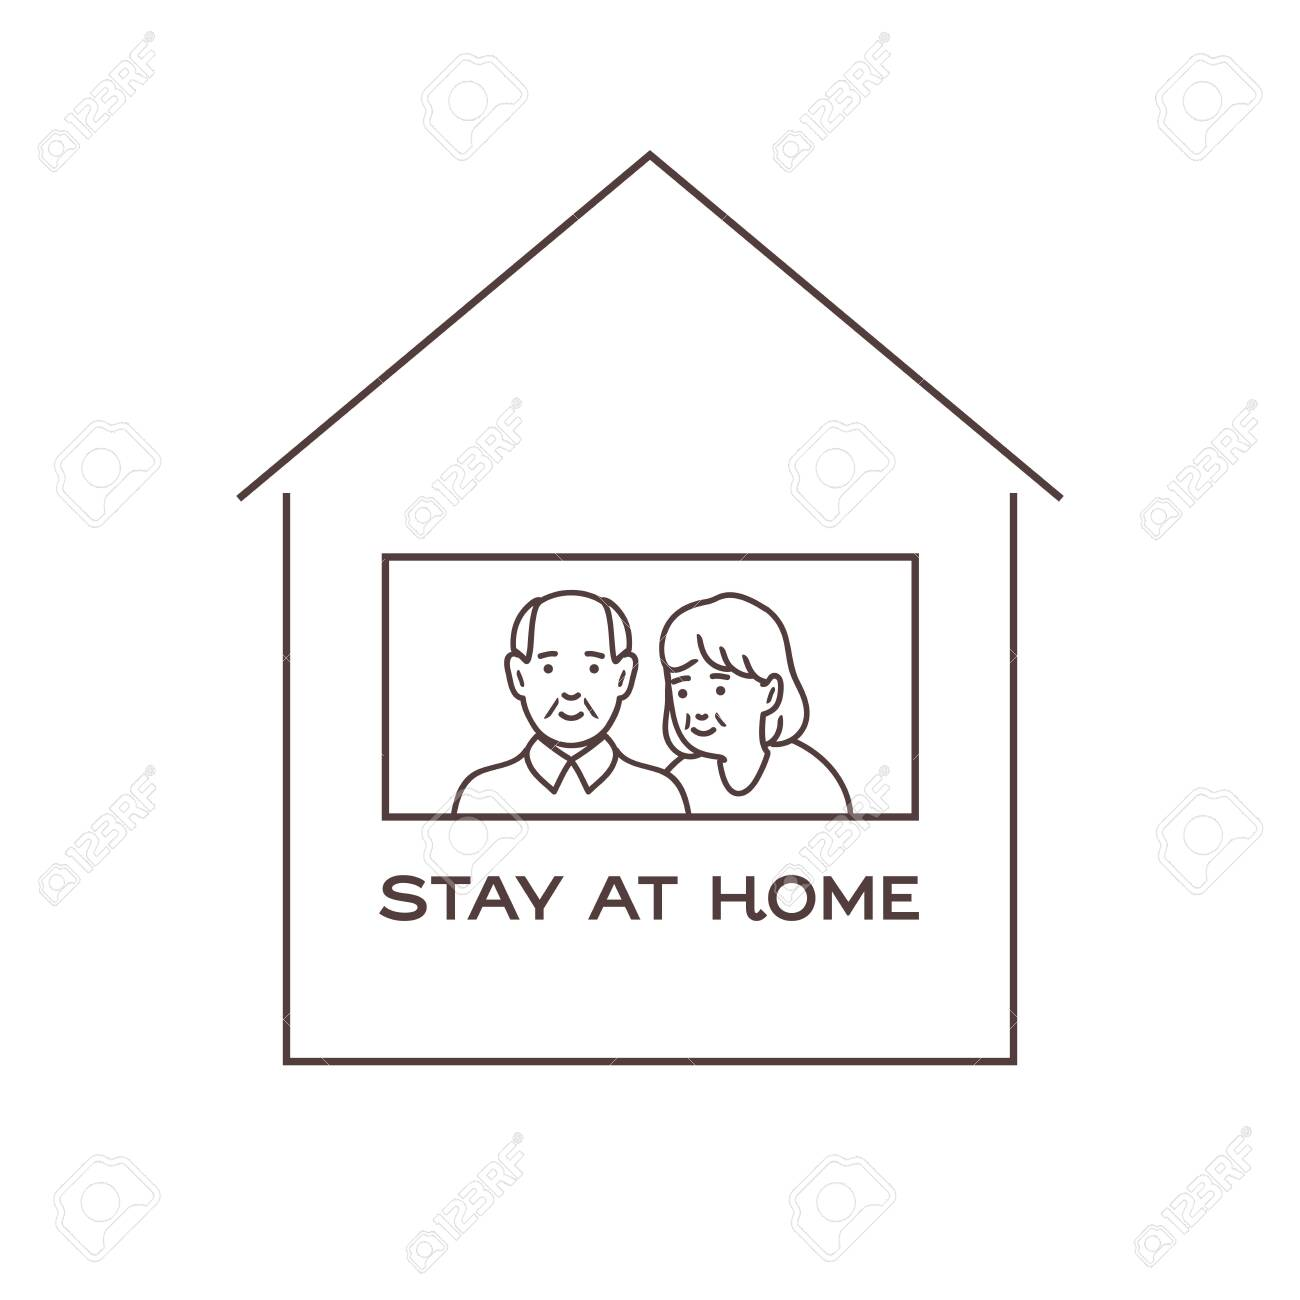 I stay at home awareness, old man and woman smiling and staying together. - 144520261